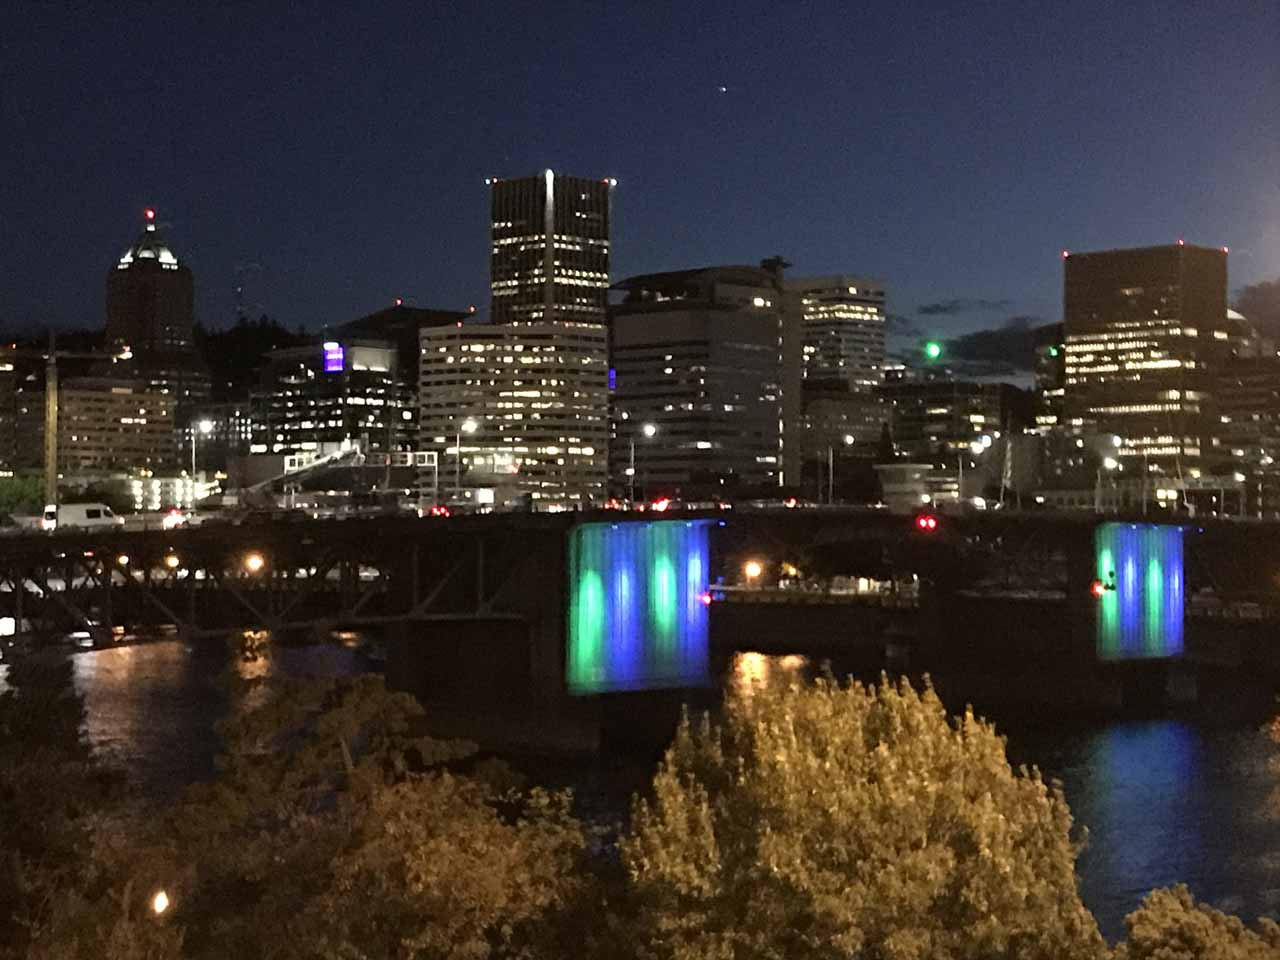 Portland was about a 90-minute drive to the Tamanawas Falls Trailhead. The city featured some interesting attractions as well as a nice urban park along the Willamette River